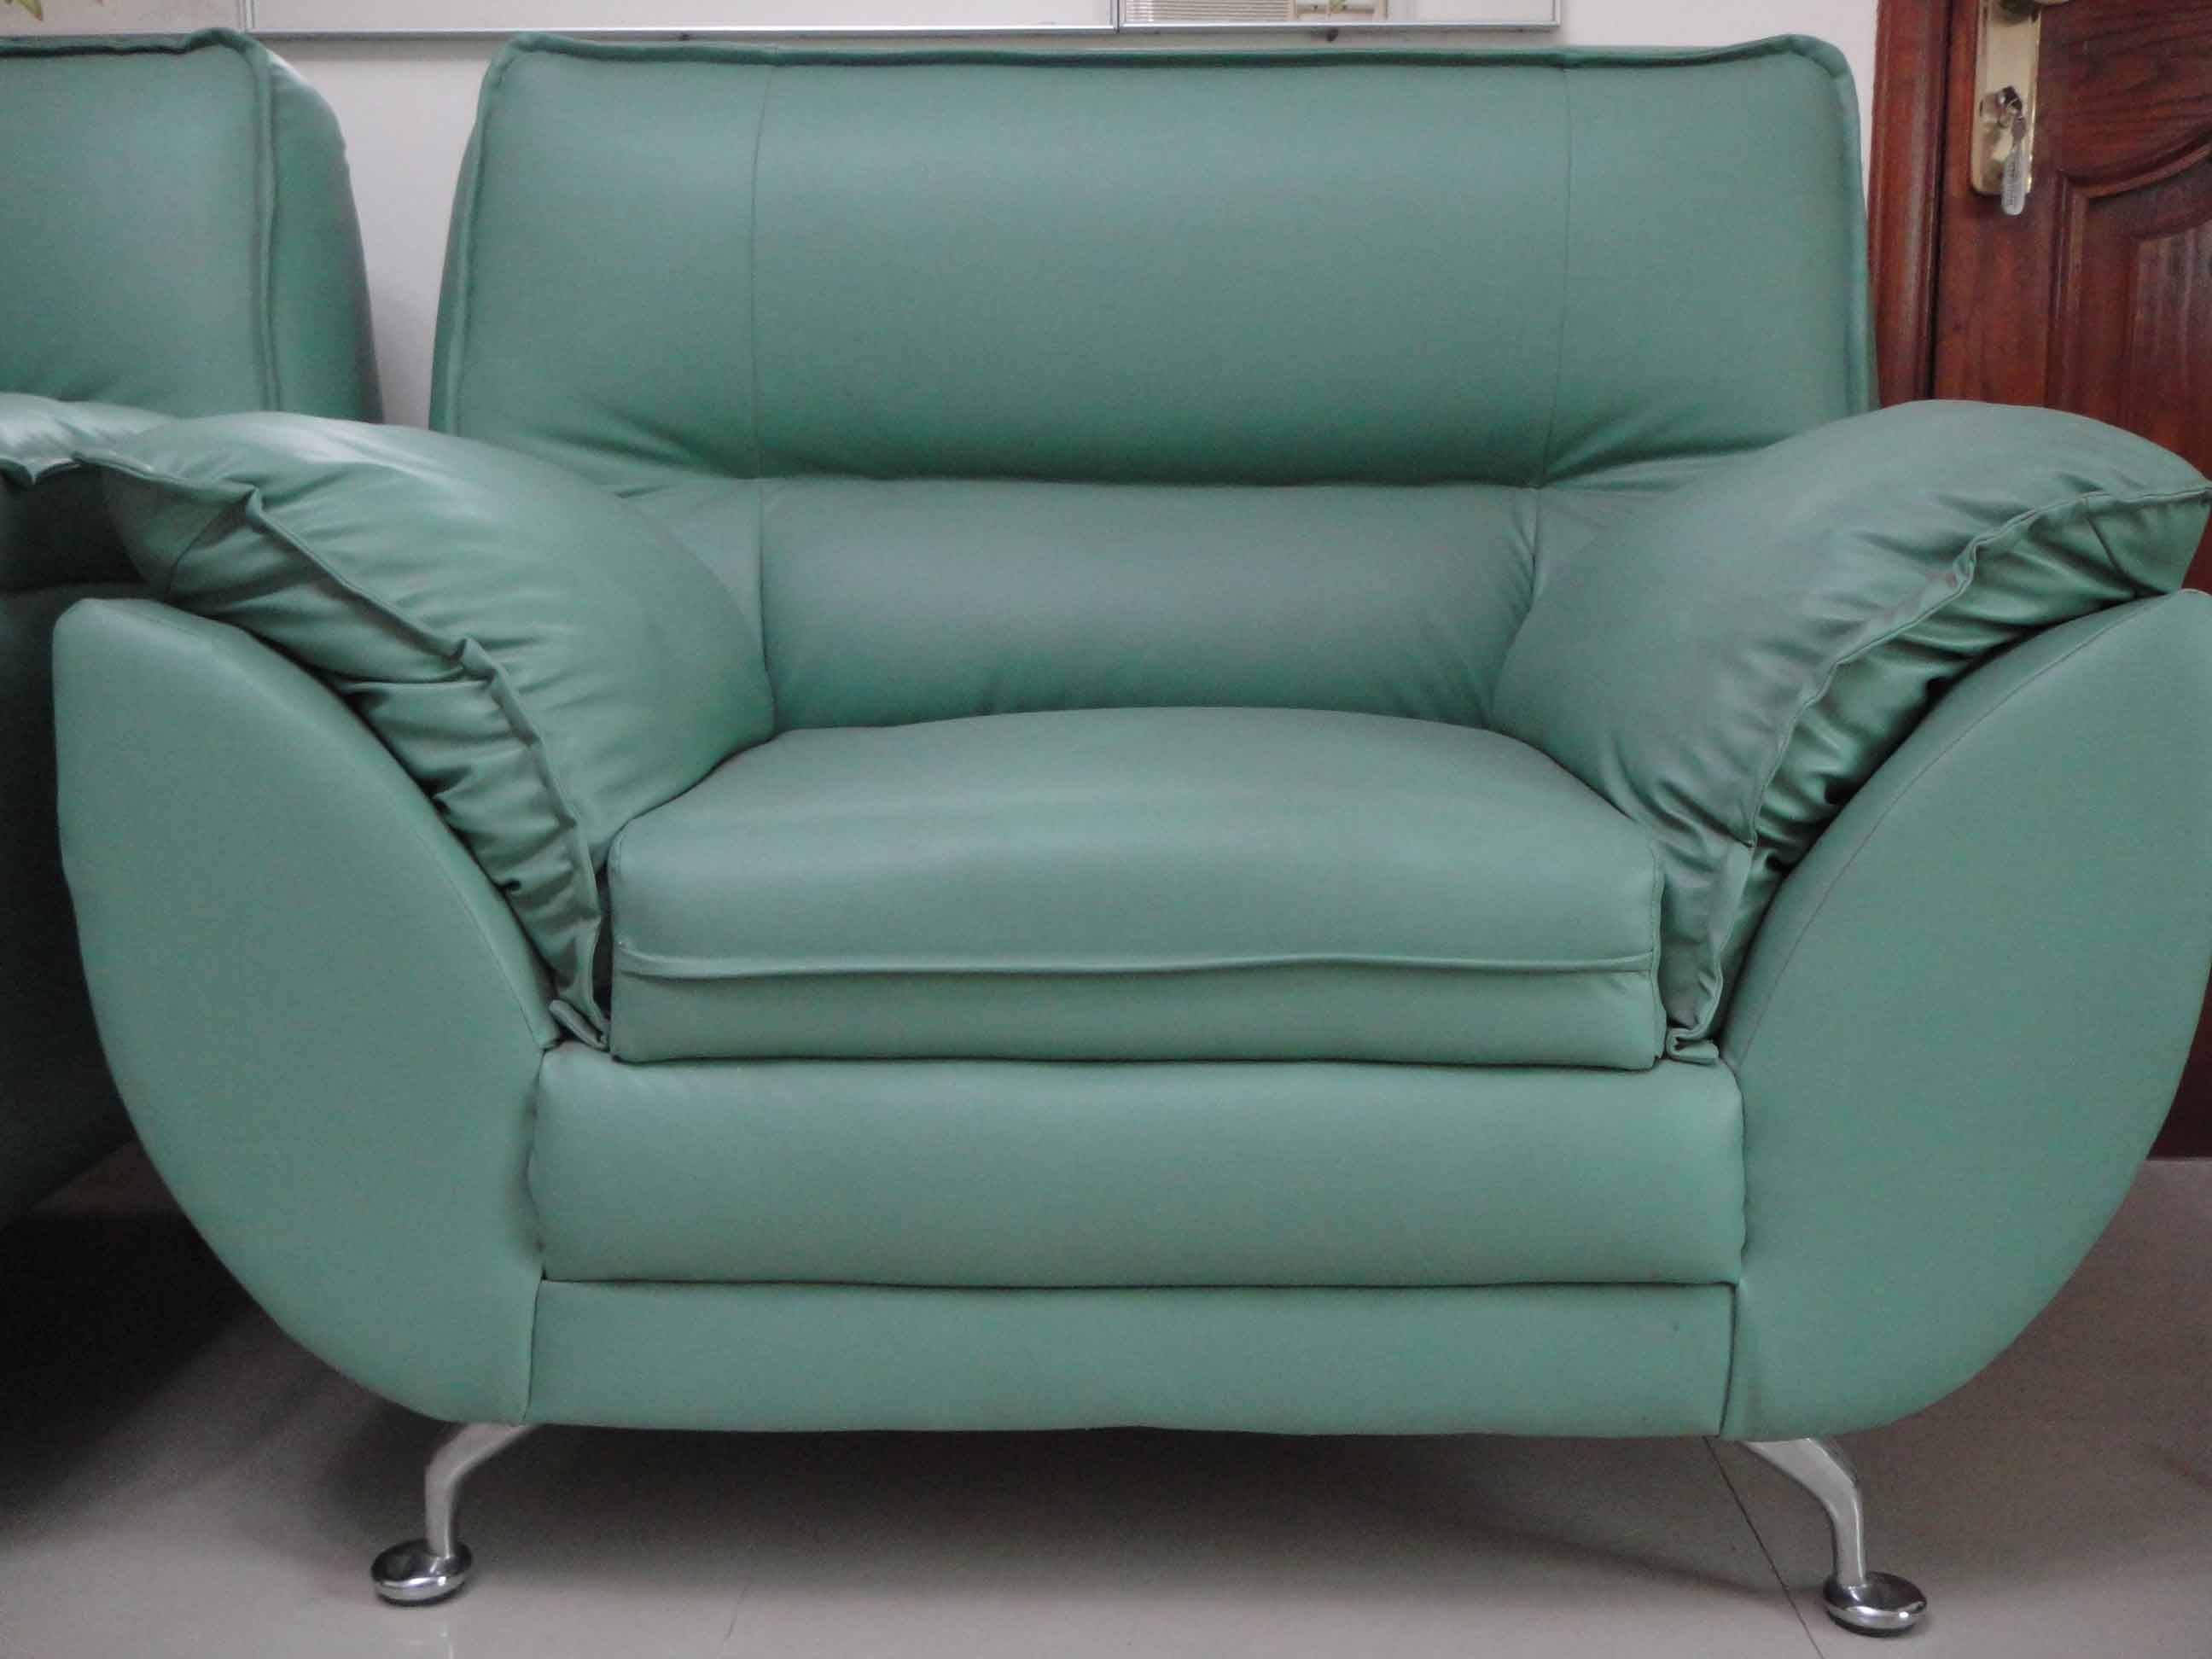 Preferred Unusual Sofas With Regard To Furniture Interesting Chic Green Leather Sofa For Your Living Room (View 12 of 20)